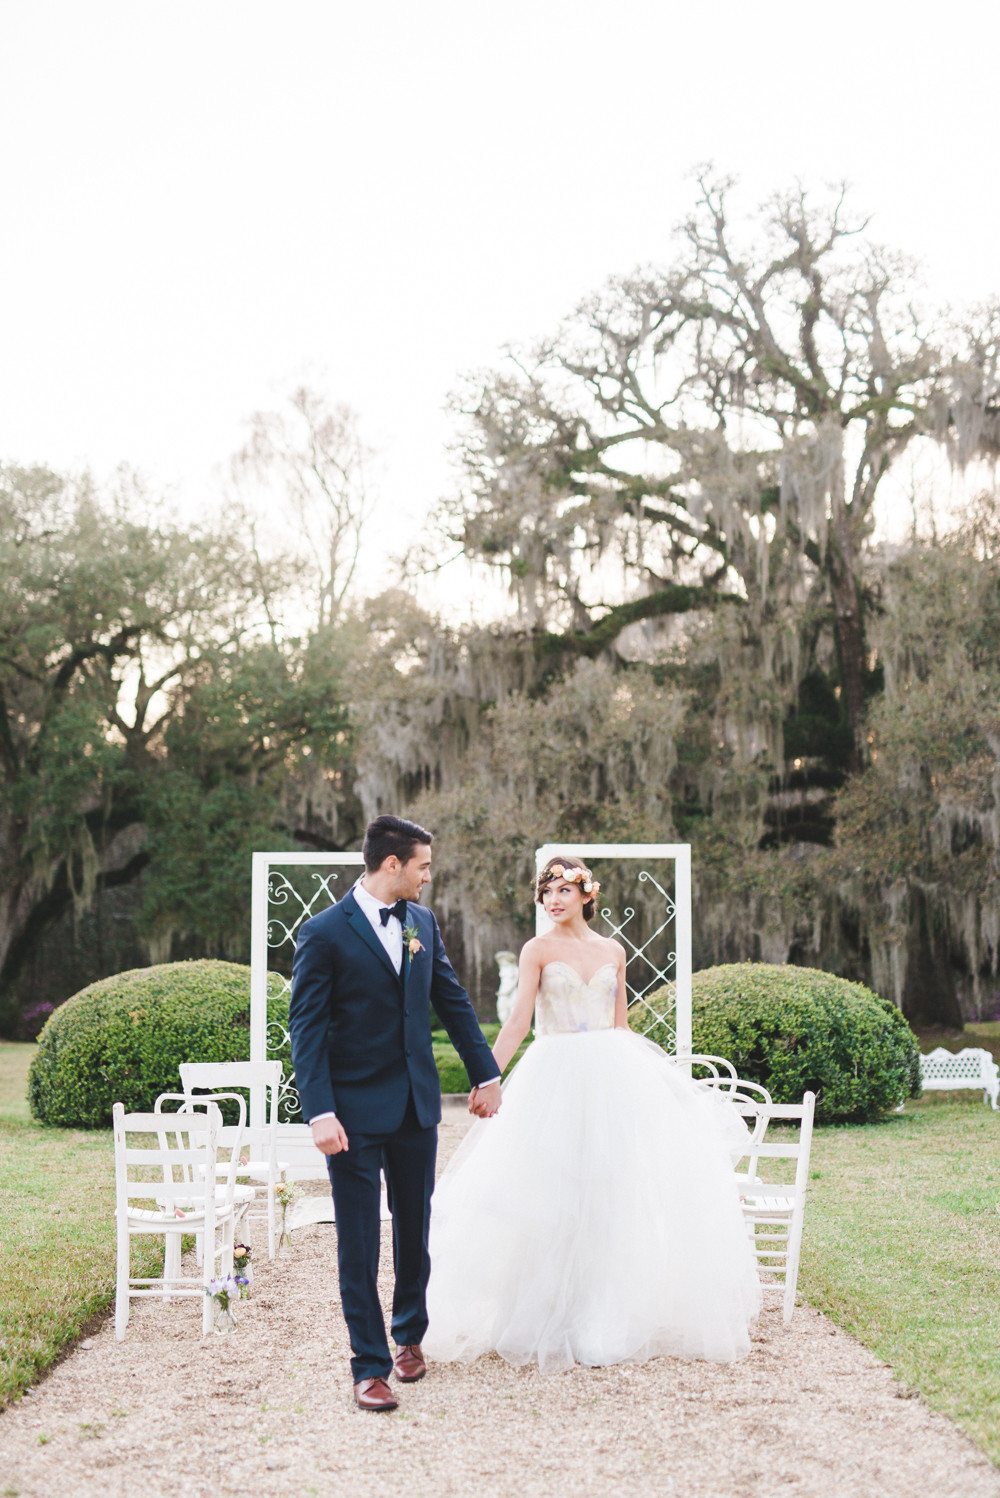 Afton Villa Gardens' Whimsical Garden Wedding Ideas with Lance Nicoll, Leaf + Petal NOLA, Everly Event Planning & Design, and Lovegood Wedding & Event Rentals